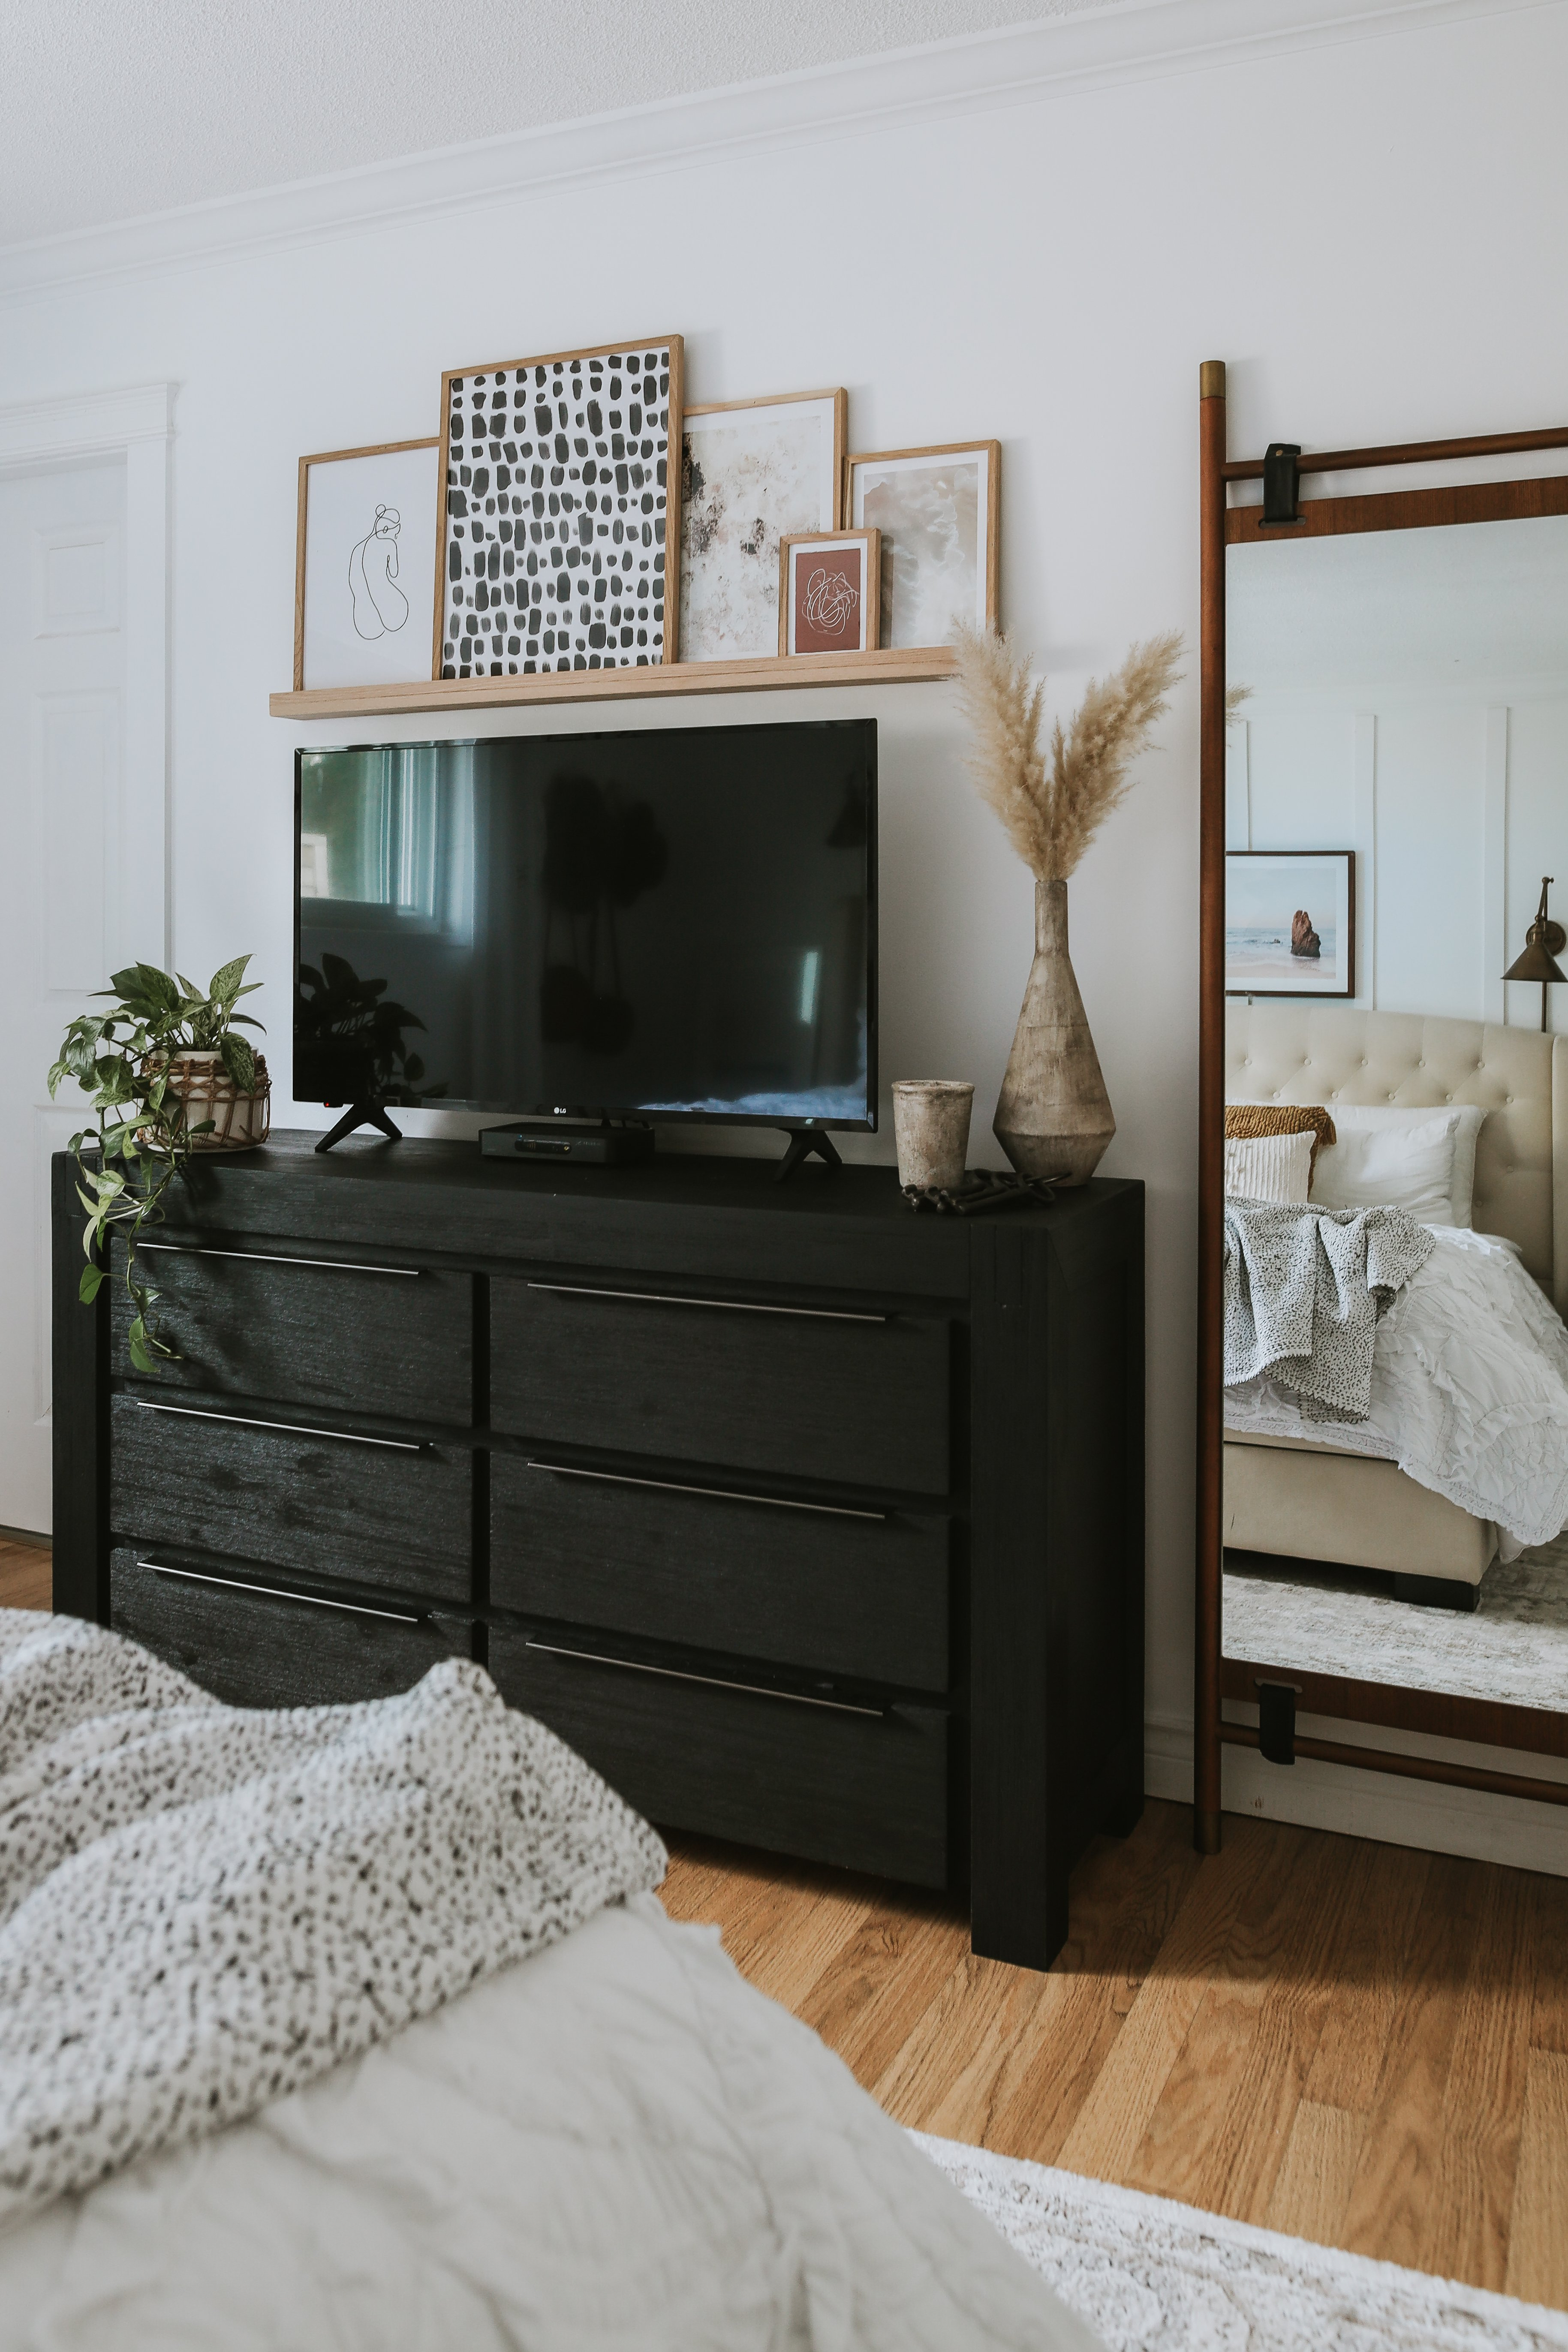 How To Decorate Around a TV. How I decorated around our TV while still shopping my house and not spending any money. Two different options to decorate around your TV.